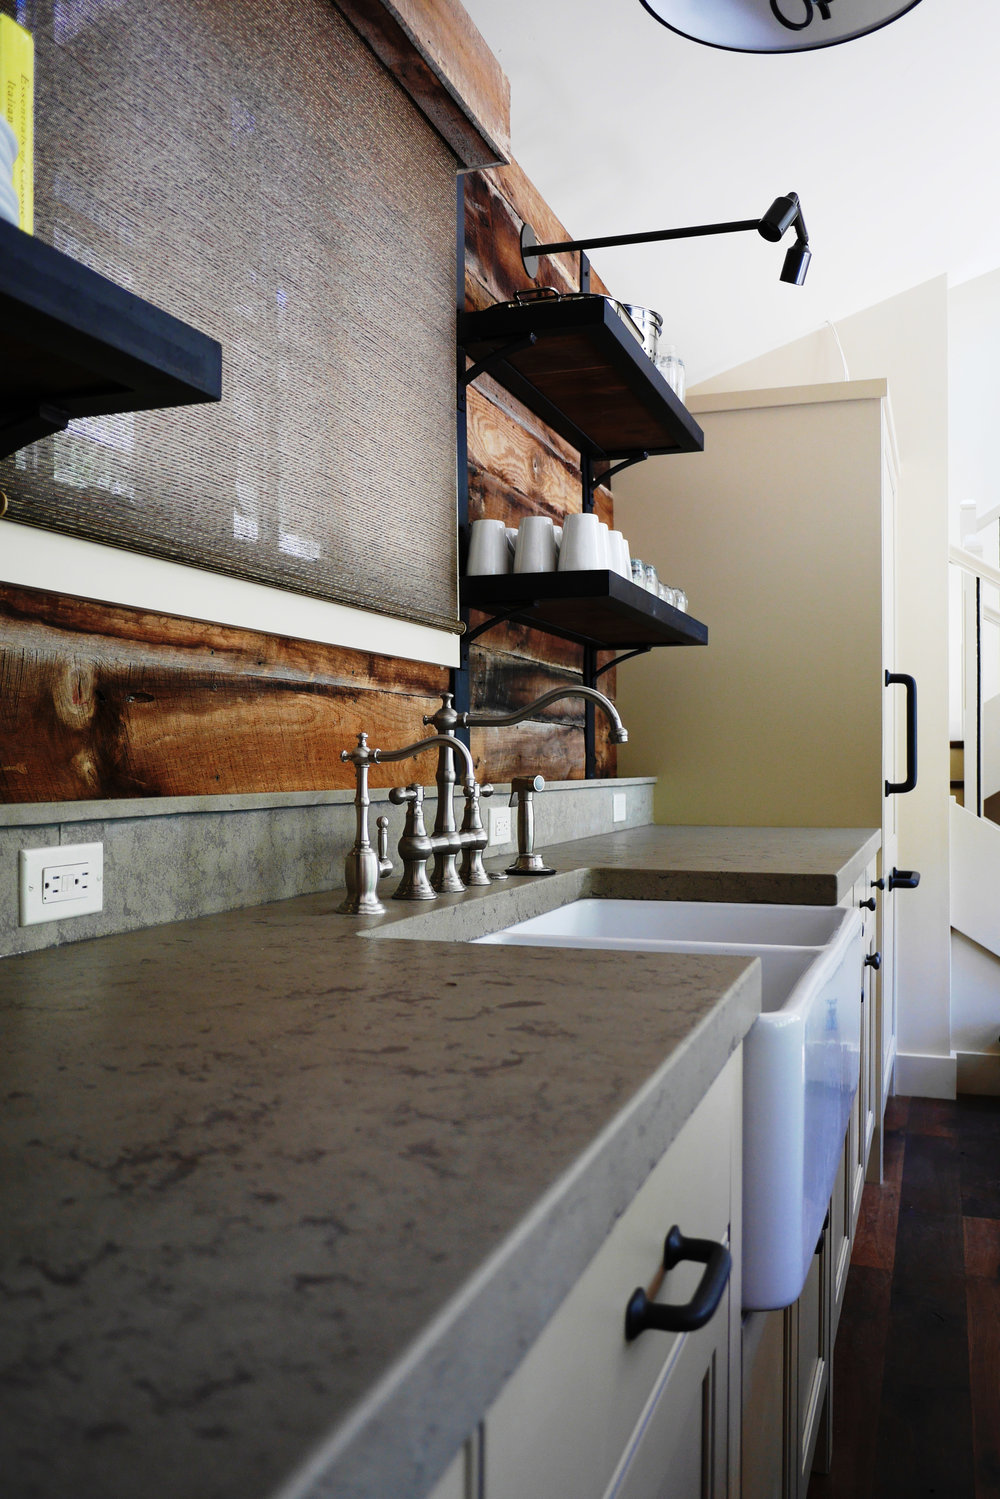 Handpressed Concrete Kitchen Countertops 2.jpg